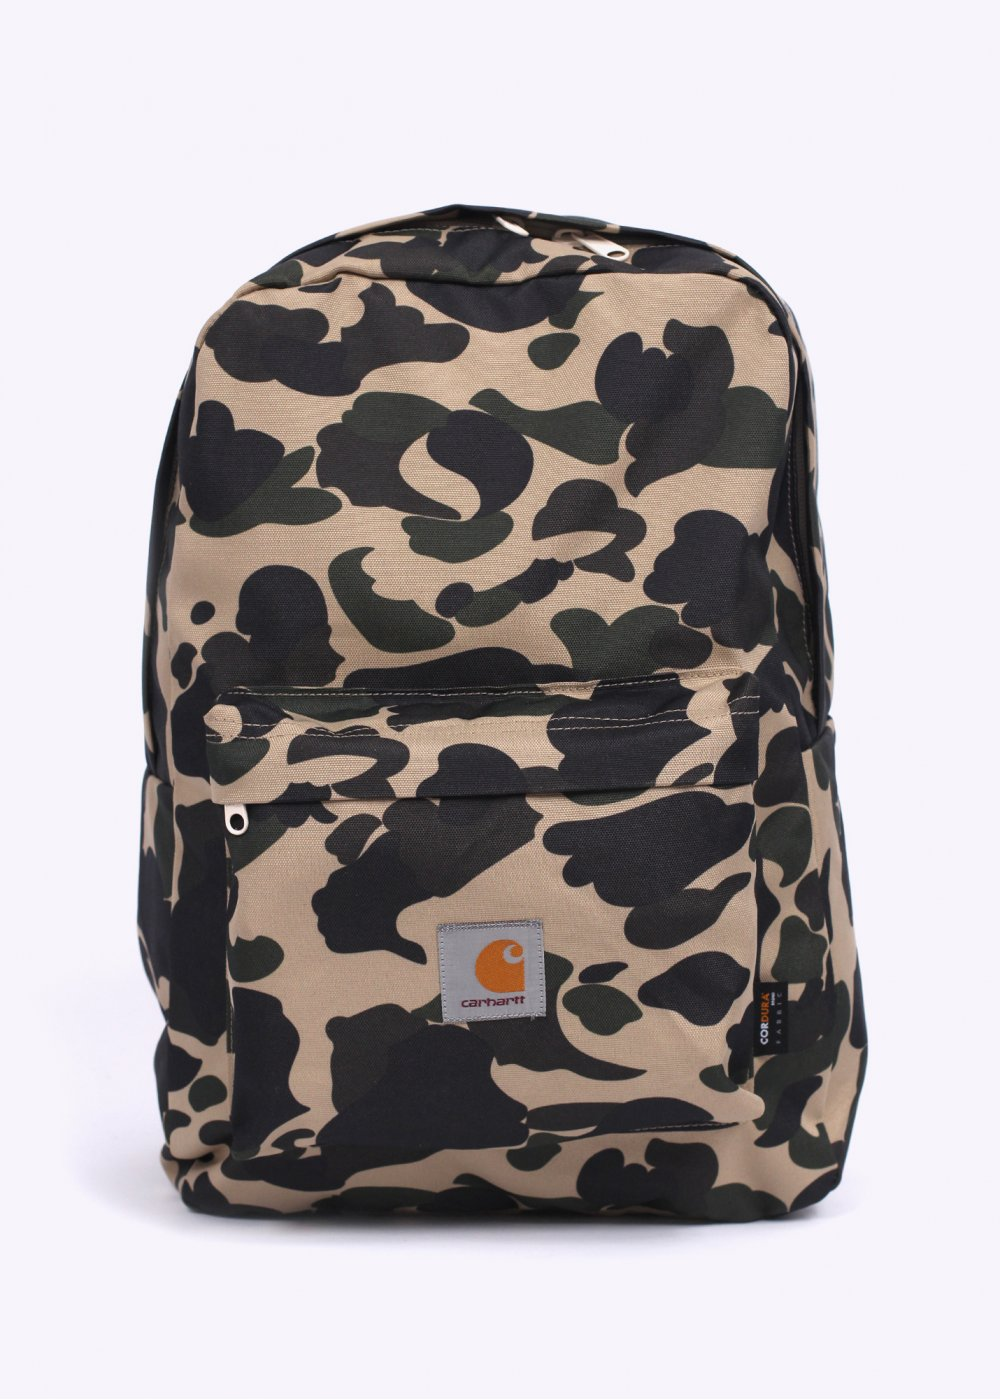 Carhartt Watch Backpack - Camo Duck - Bags from Triads UK